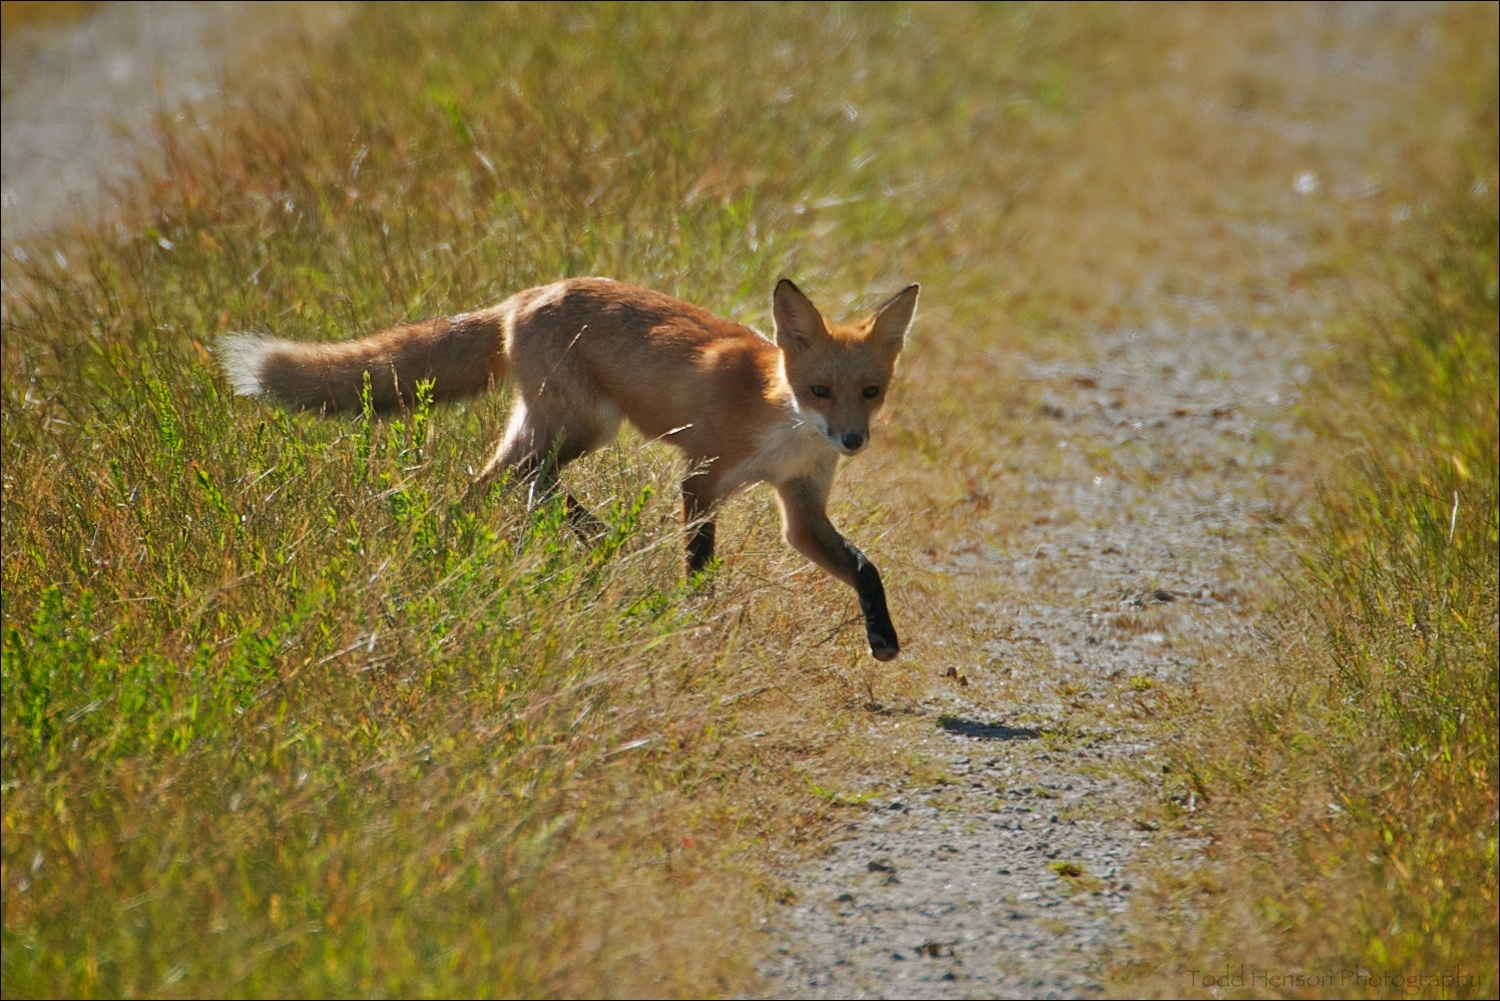 Maturing red fox crossing trail in late morning